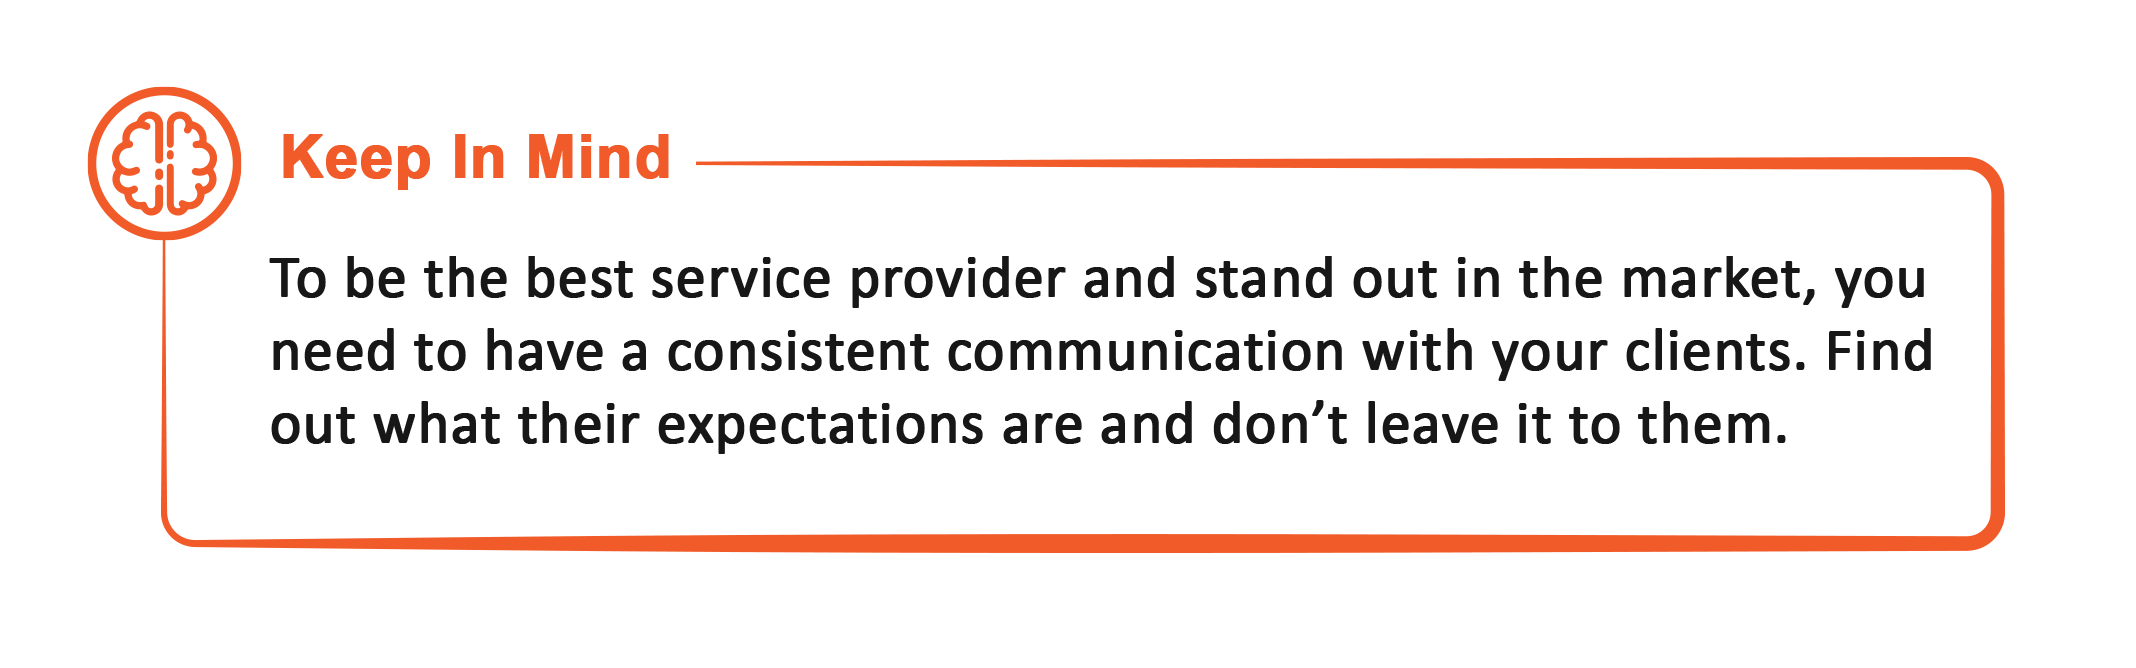 challenges of service providers, communication in service industry